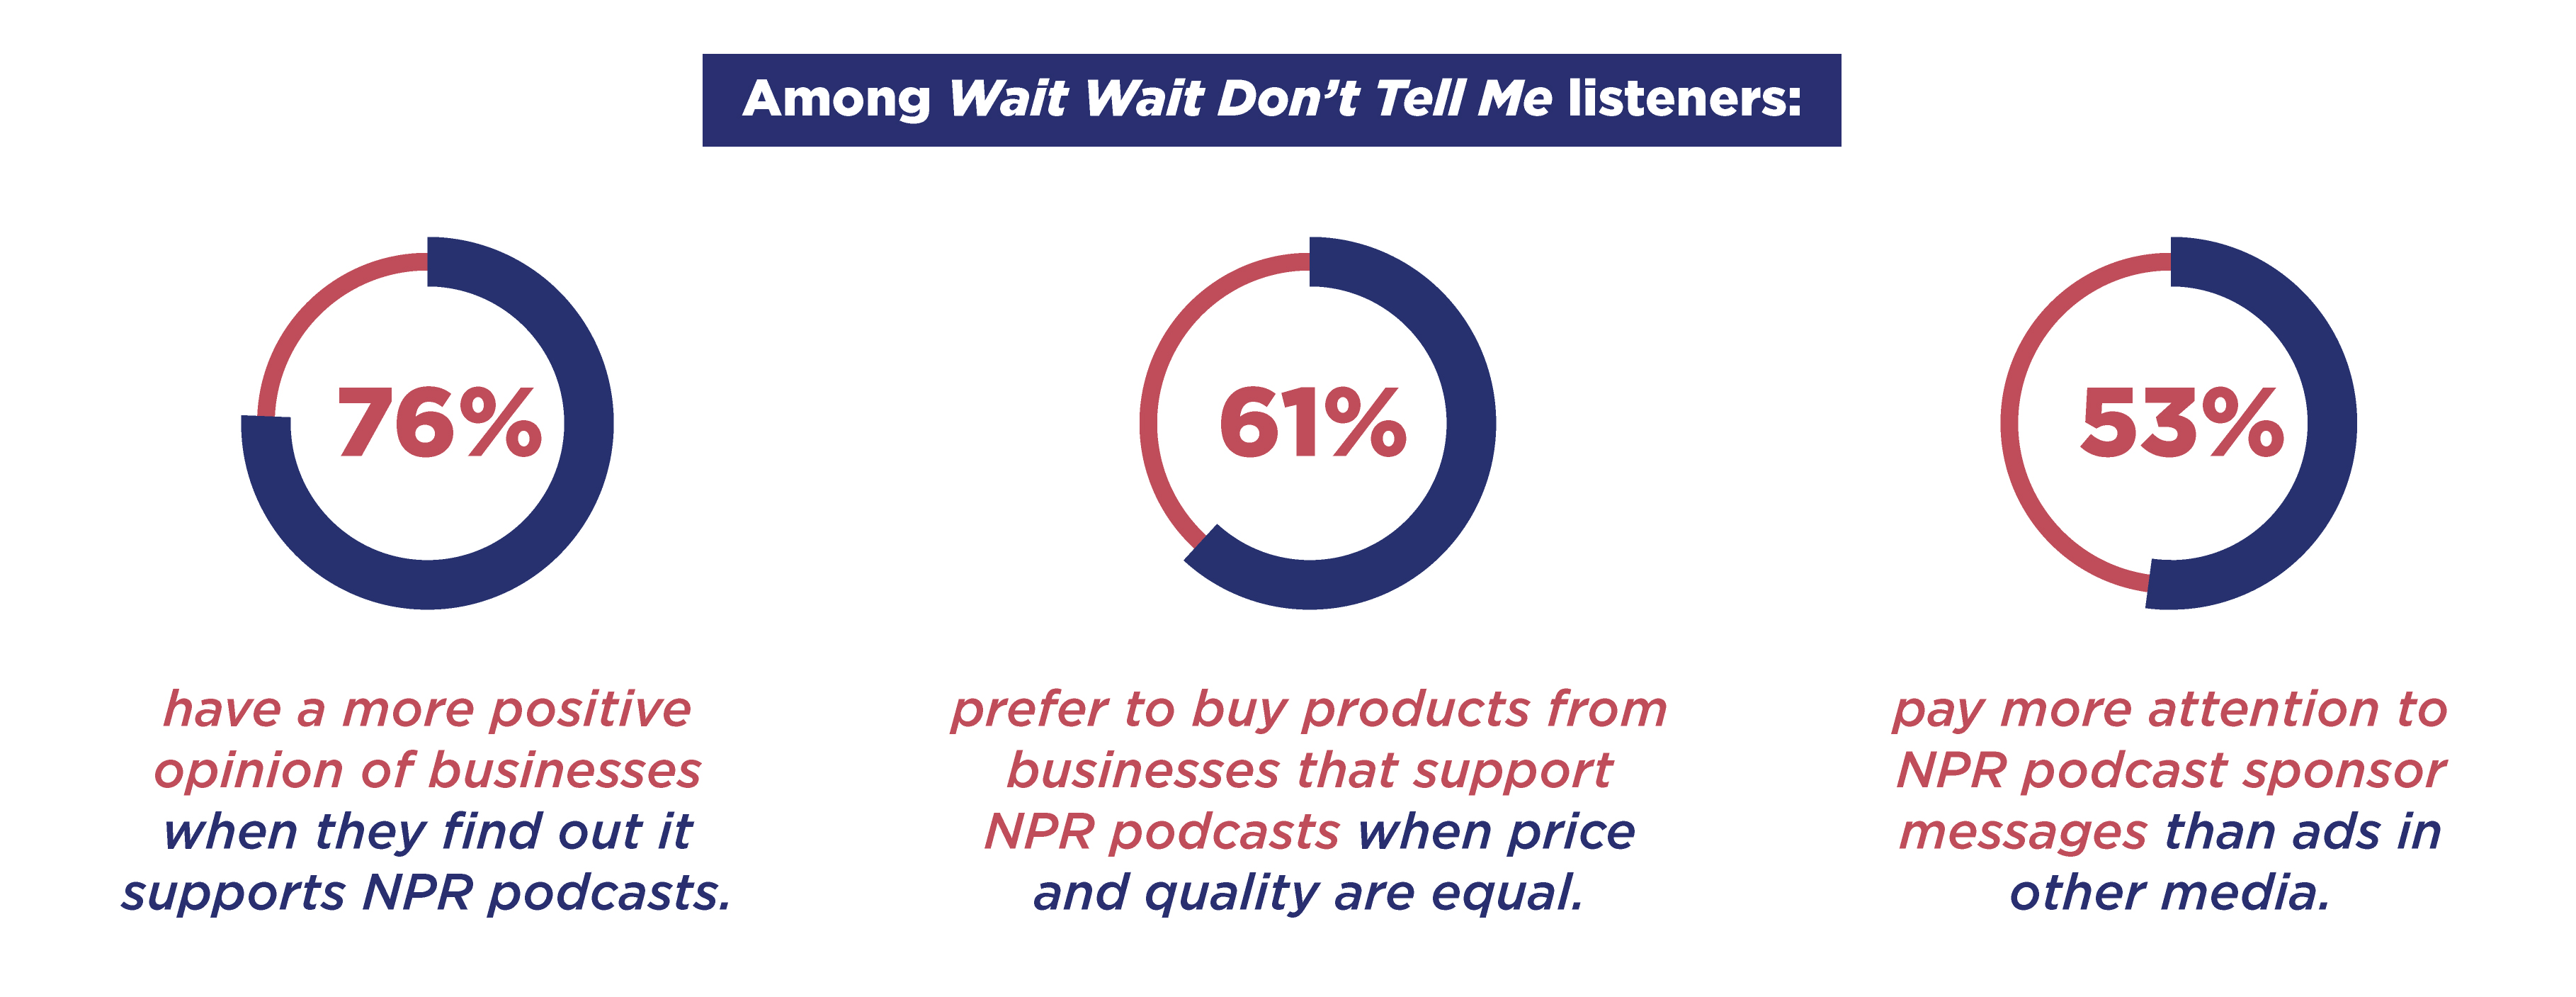 76% of Wait Wait listeners have a more positive opinion of businesses when they find out it supports NPR podcasts